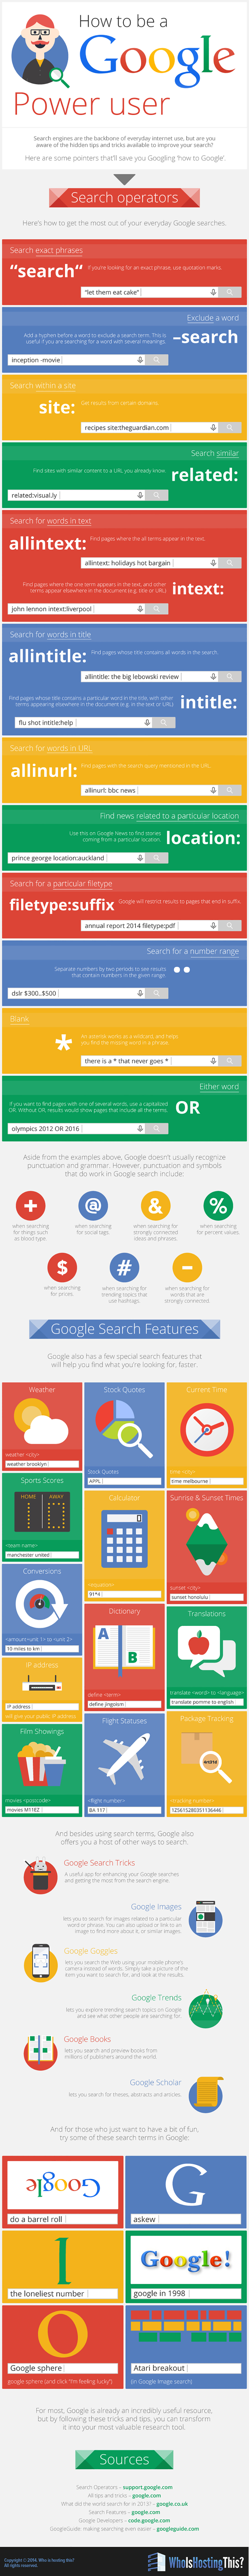 How to be a google power user infographic